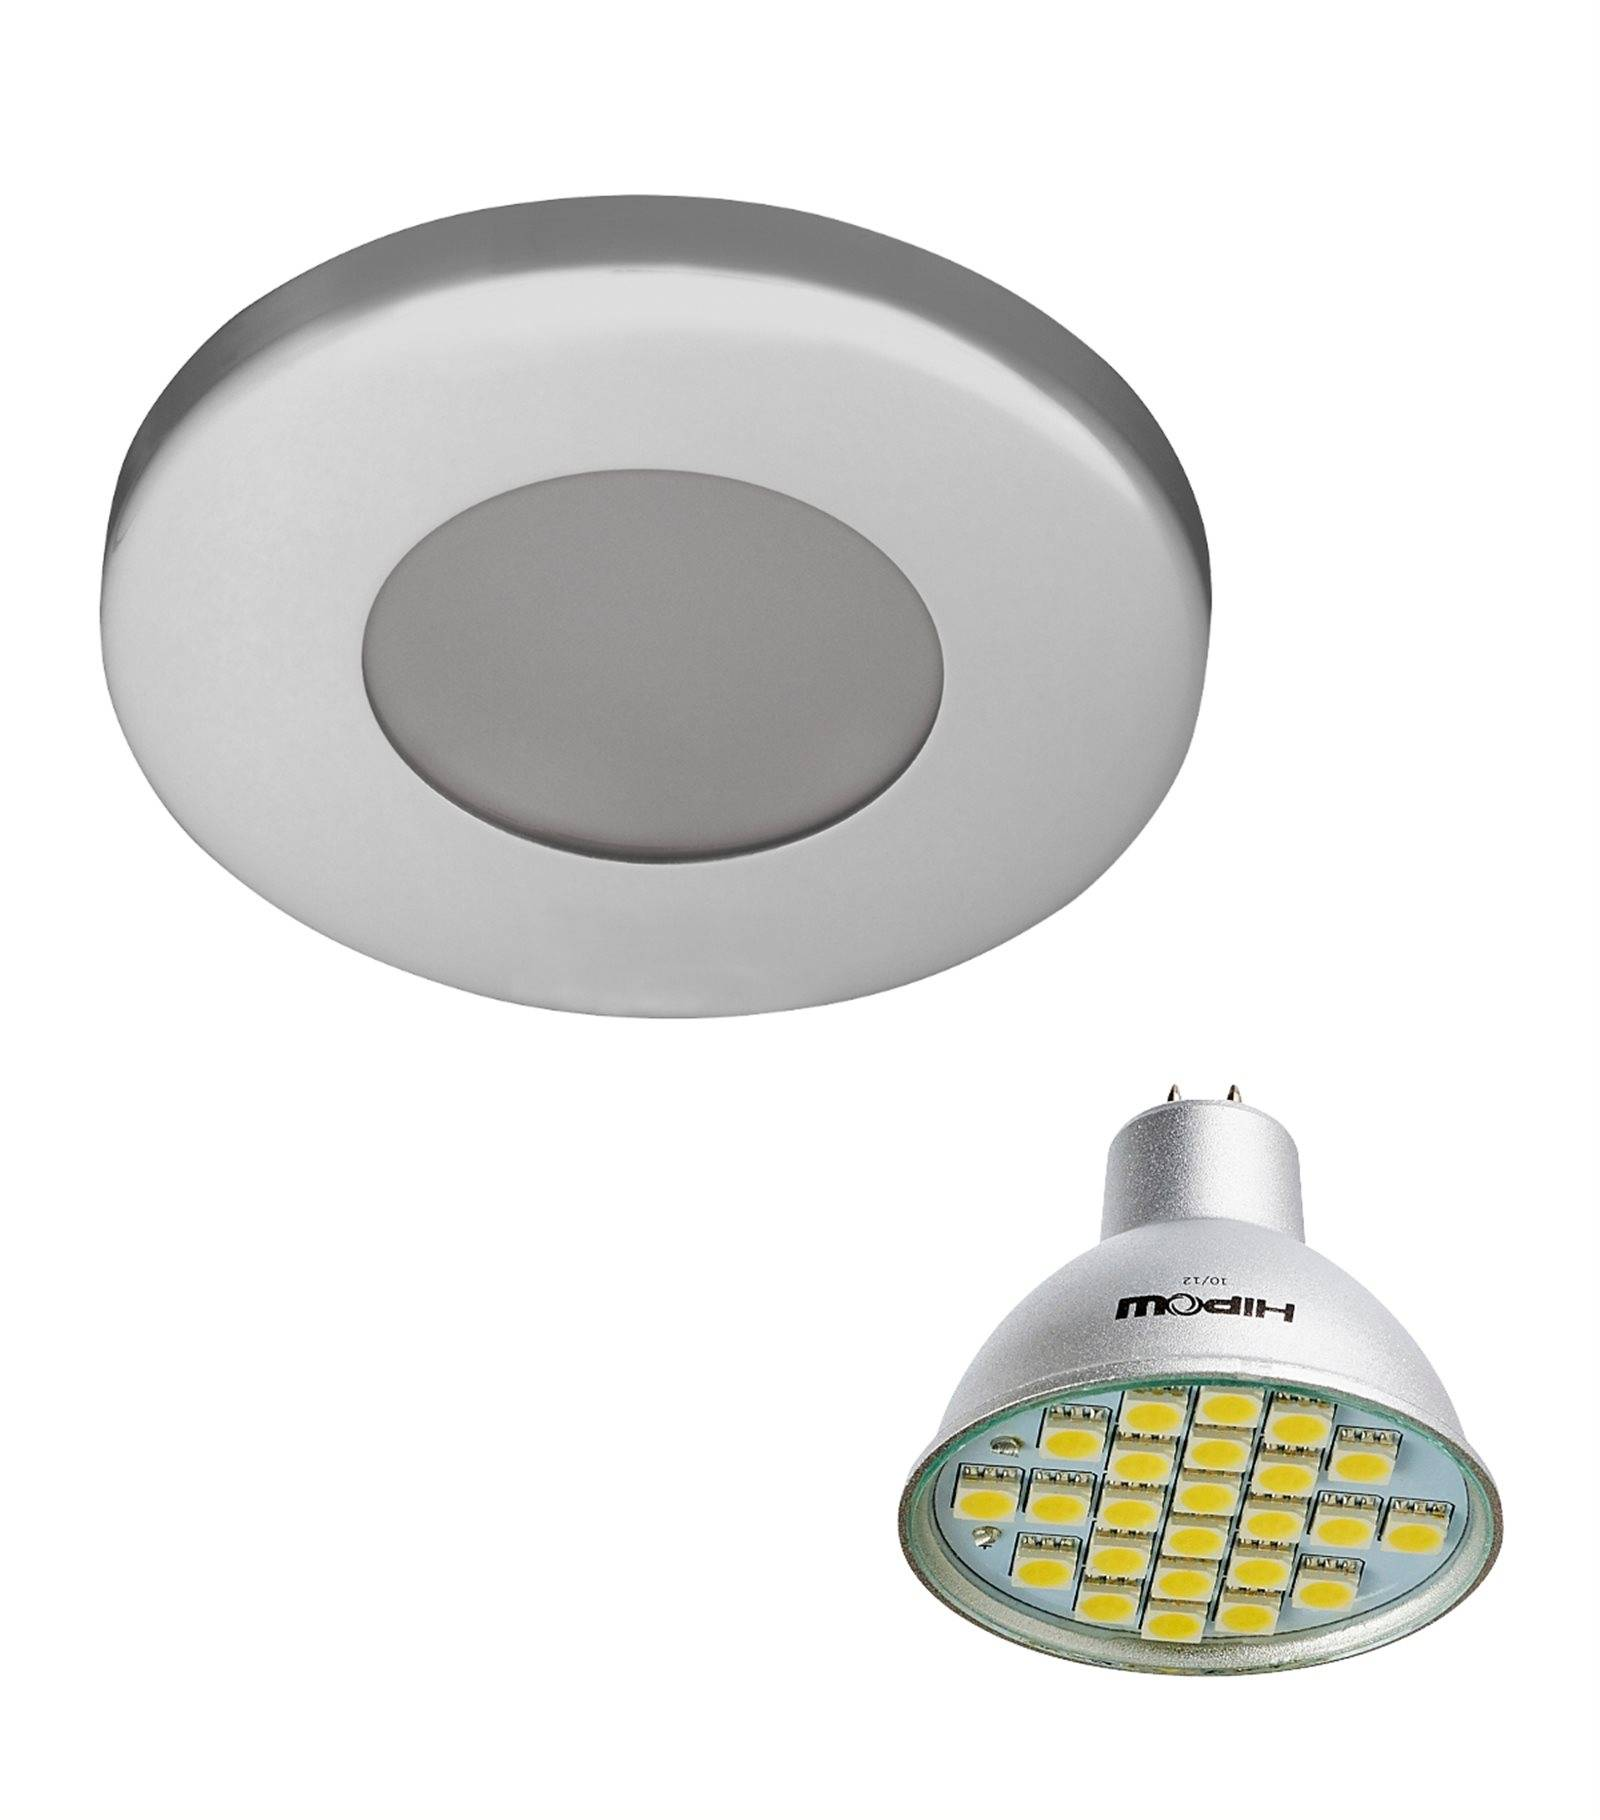 Pack Spot Encastrable Salle De Bain Chrome Rond Gu5 3 Mr16 Ip44 4w